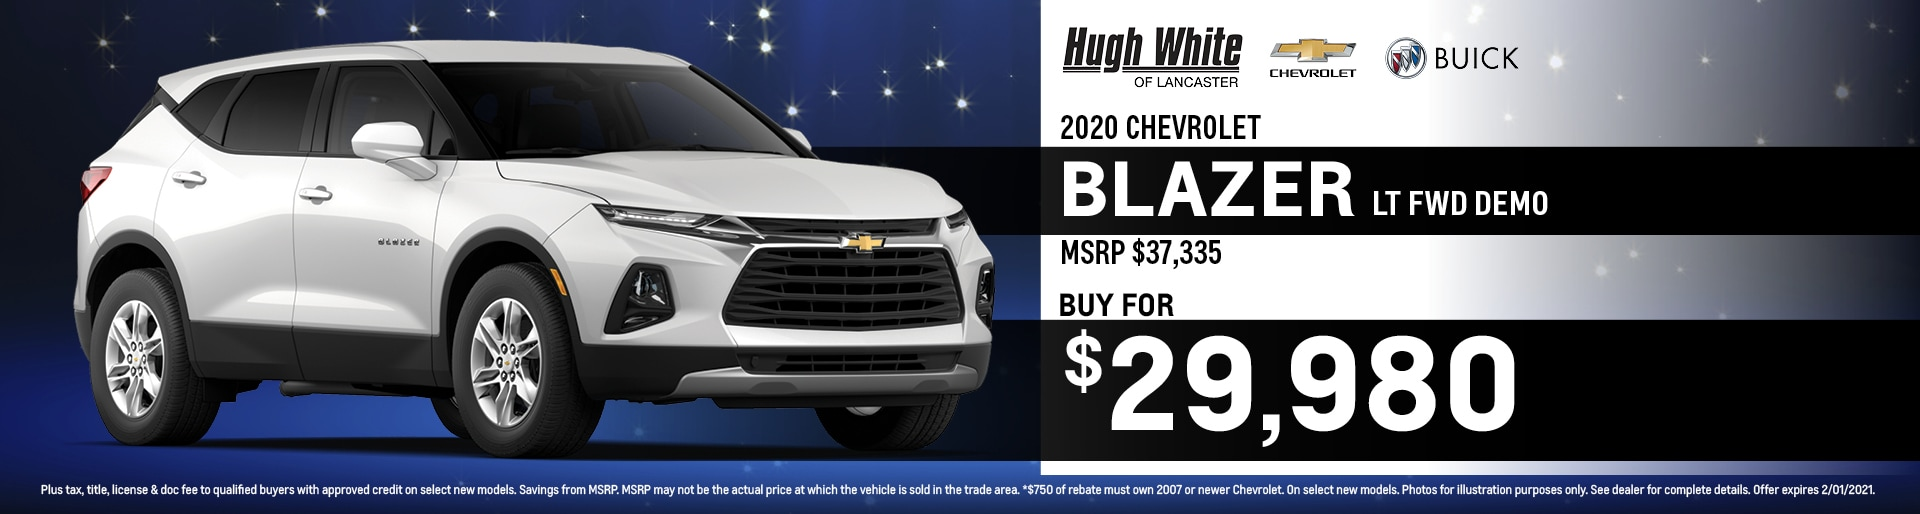 2020 Chevy Blazer Special Offer | Hugh White Chevy Buick Lancaster, OH